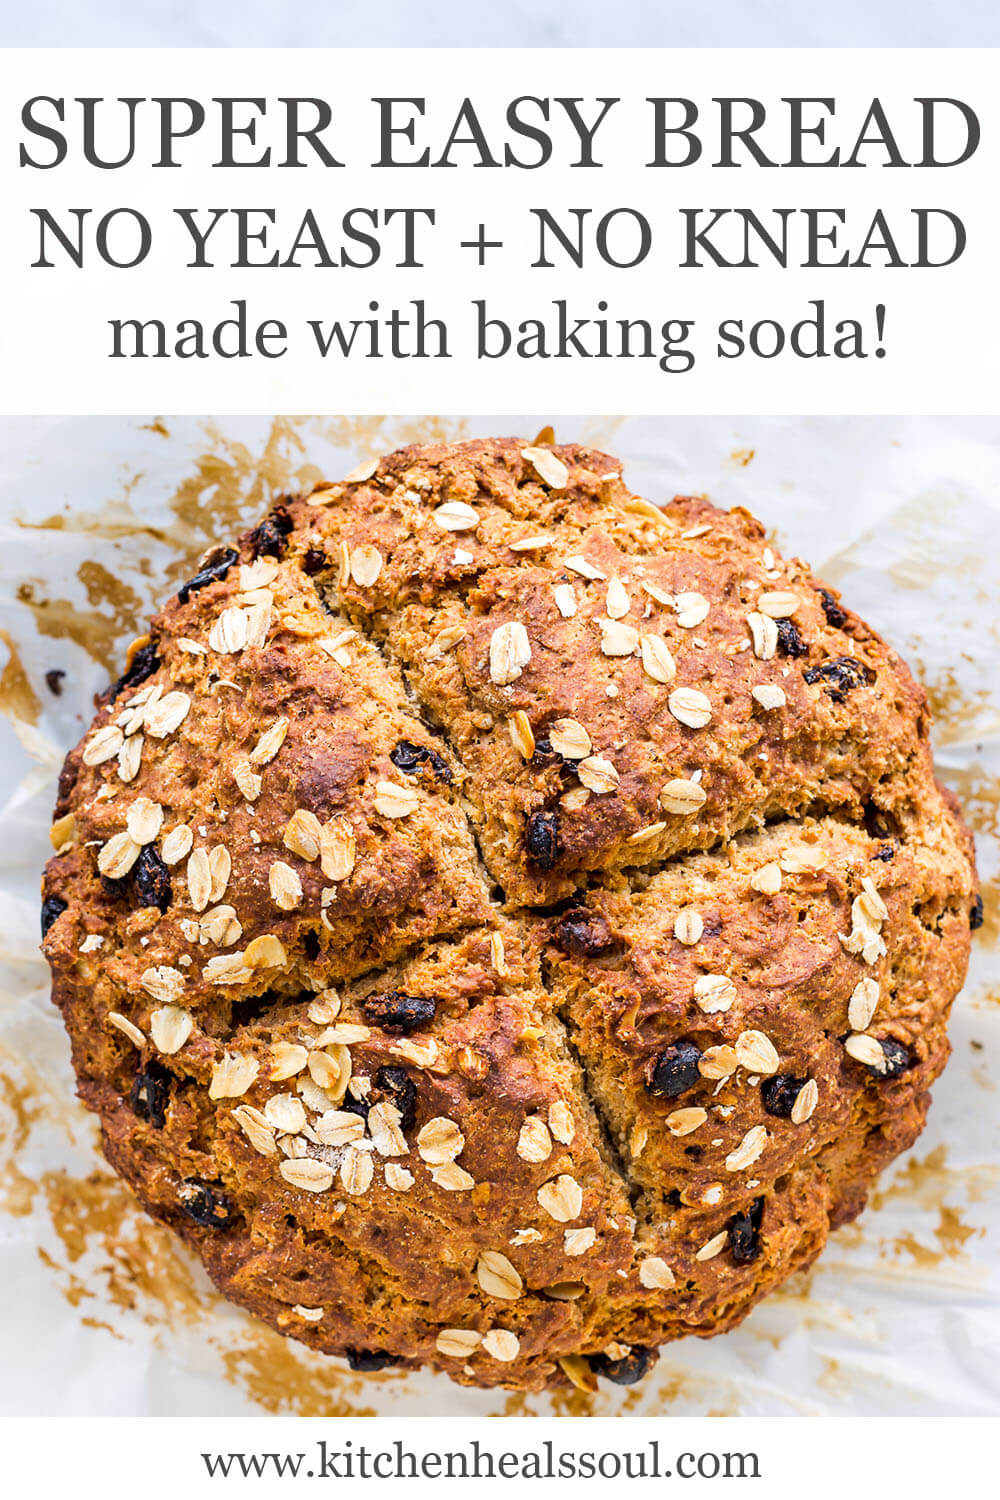 Irish soda bread with raisins topped with oats and scored with a big X on top, on parchment paper